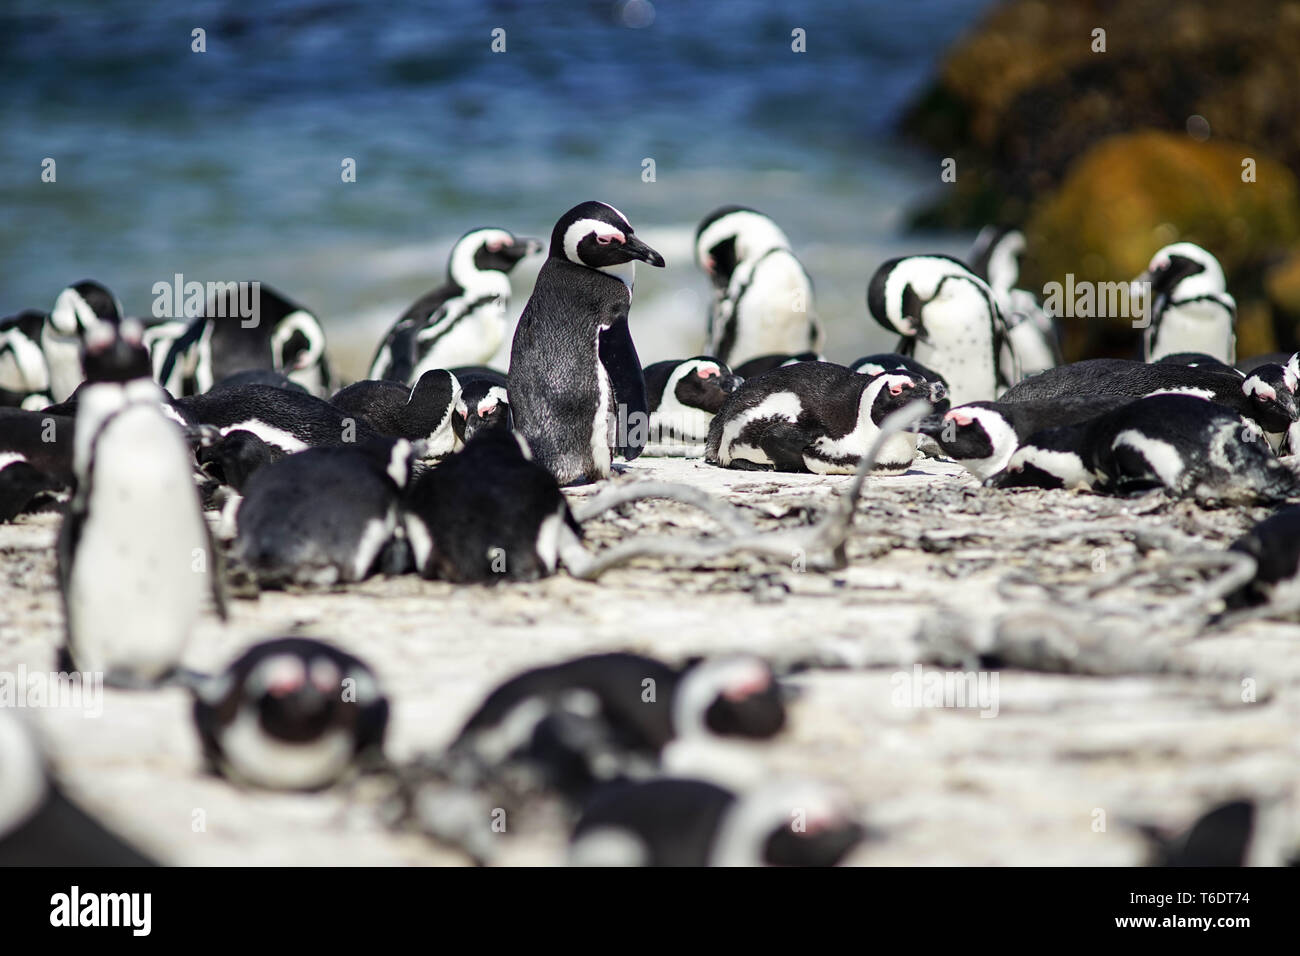 Penguin colony at Bettys Bay, South Africa Stock Photo